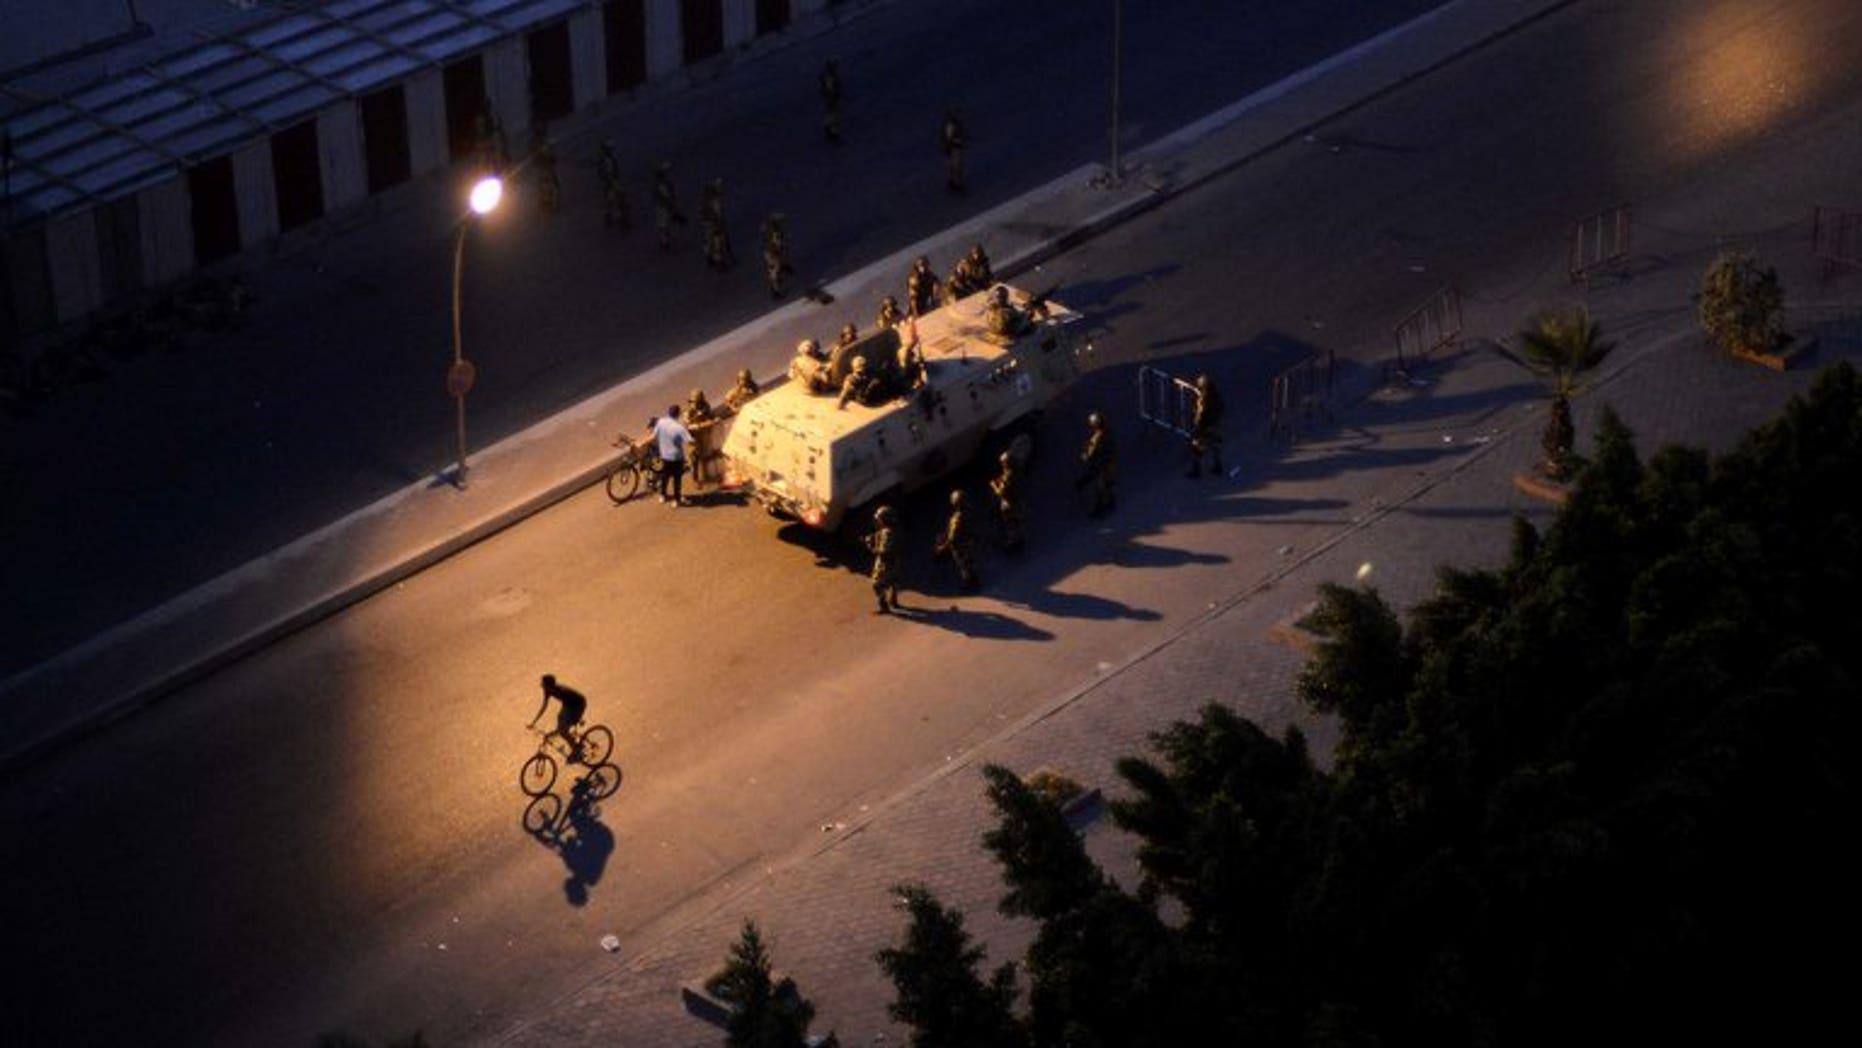 """An Egyptian army armored personnel carrier and soldiers are stationed on a street in Cairo following the toppling of ousted Egyptian president Mohamed Morsi on July 4, 2013. An alliance of Islamist parties and movements including ousted president Mohamed Morsi's Muslim Brotherhood has called for """"peaceful protests"""" on Friday to denounce the military's overthrow of the Islamist president."""